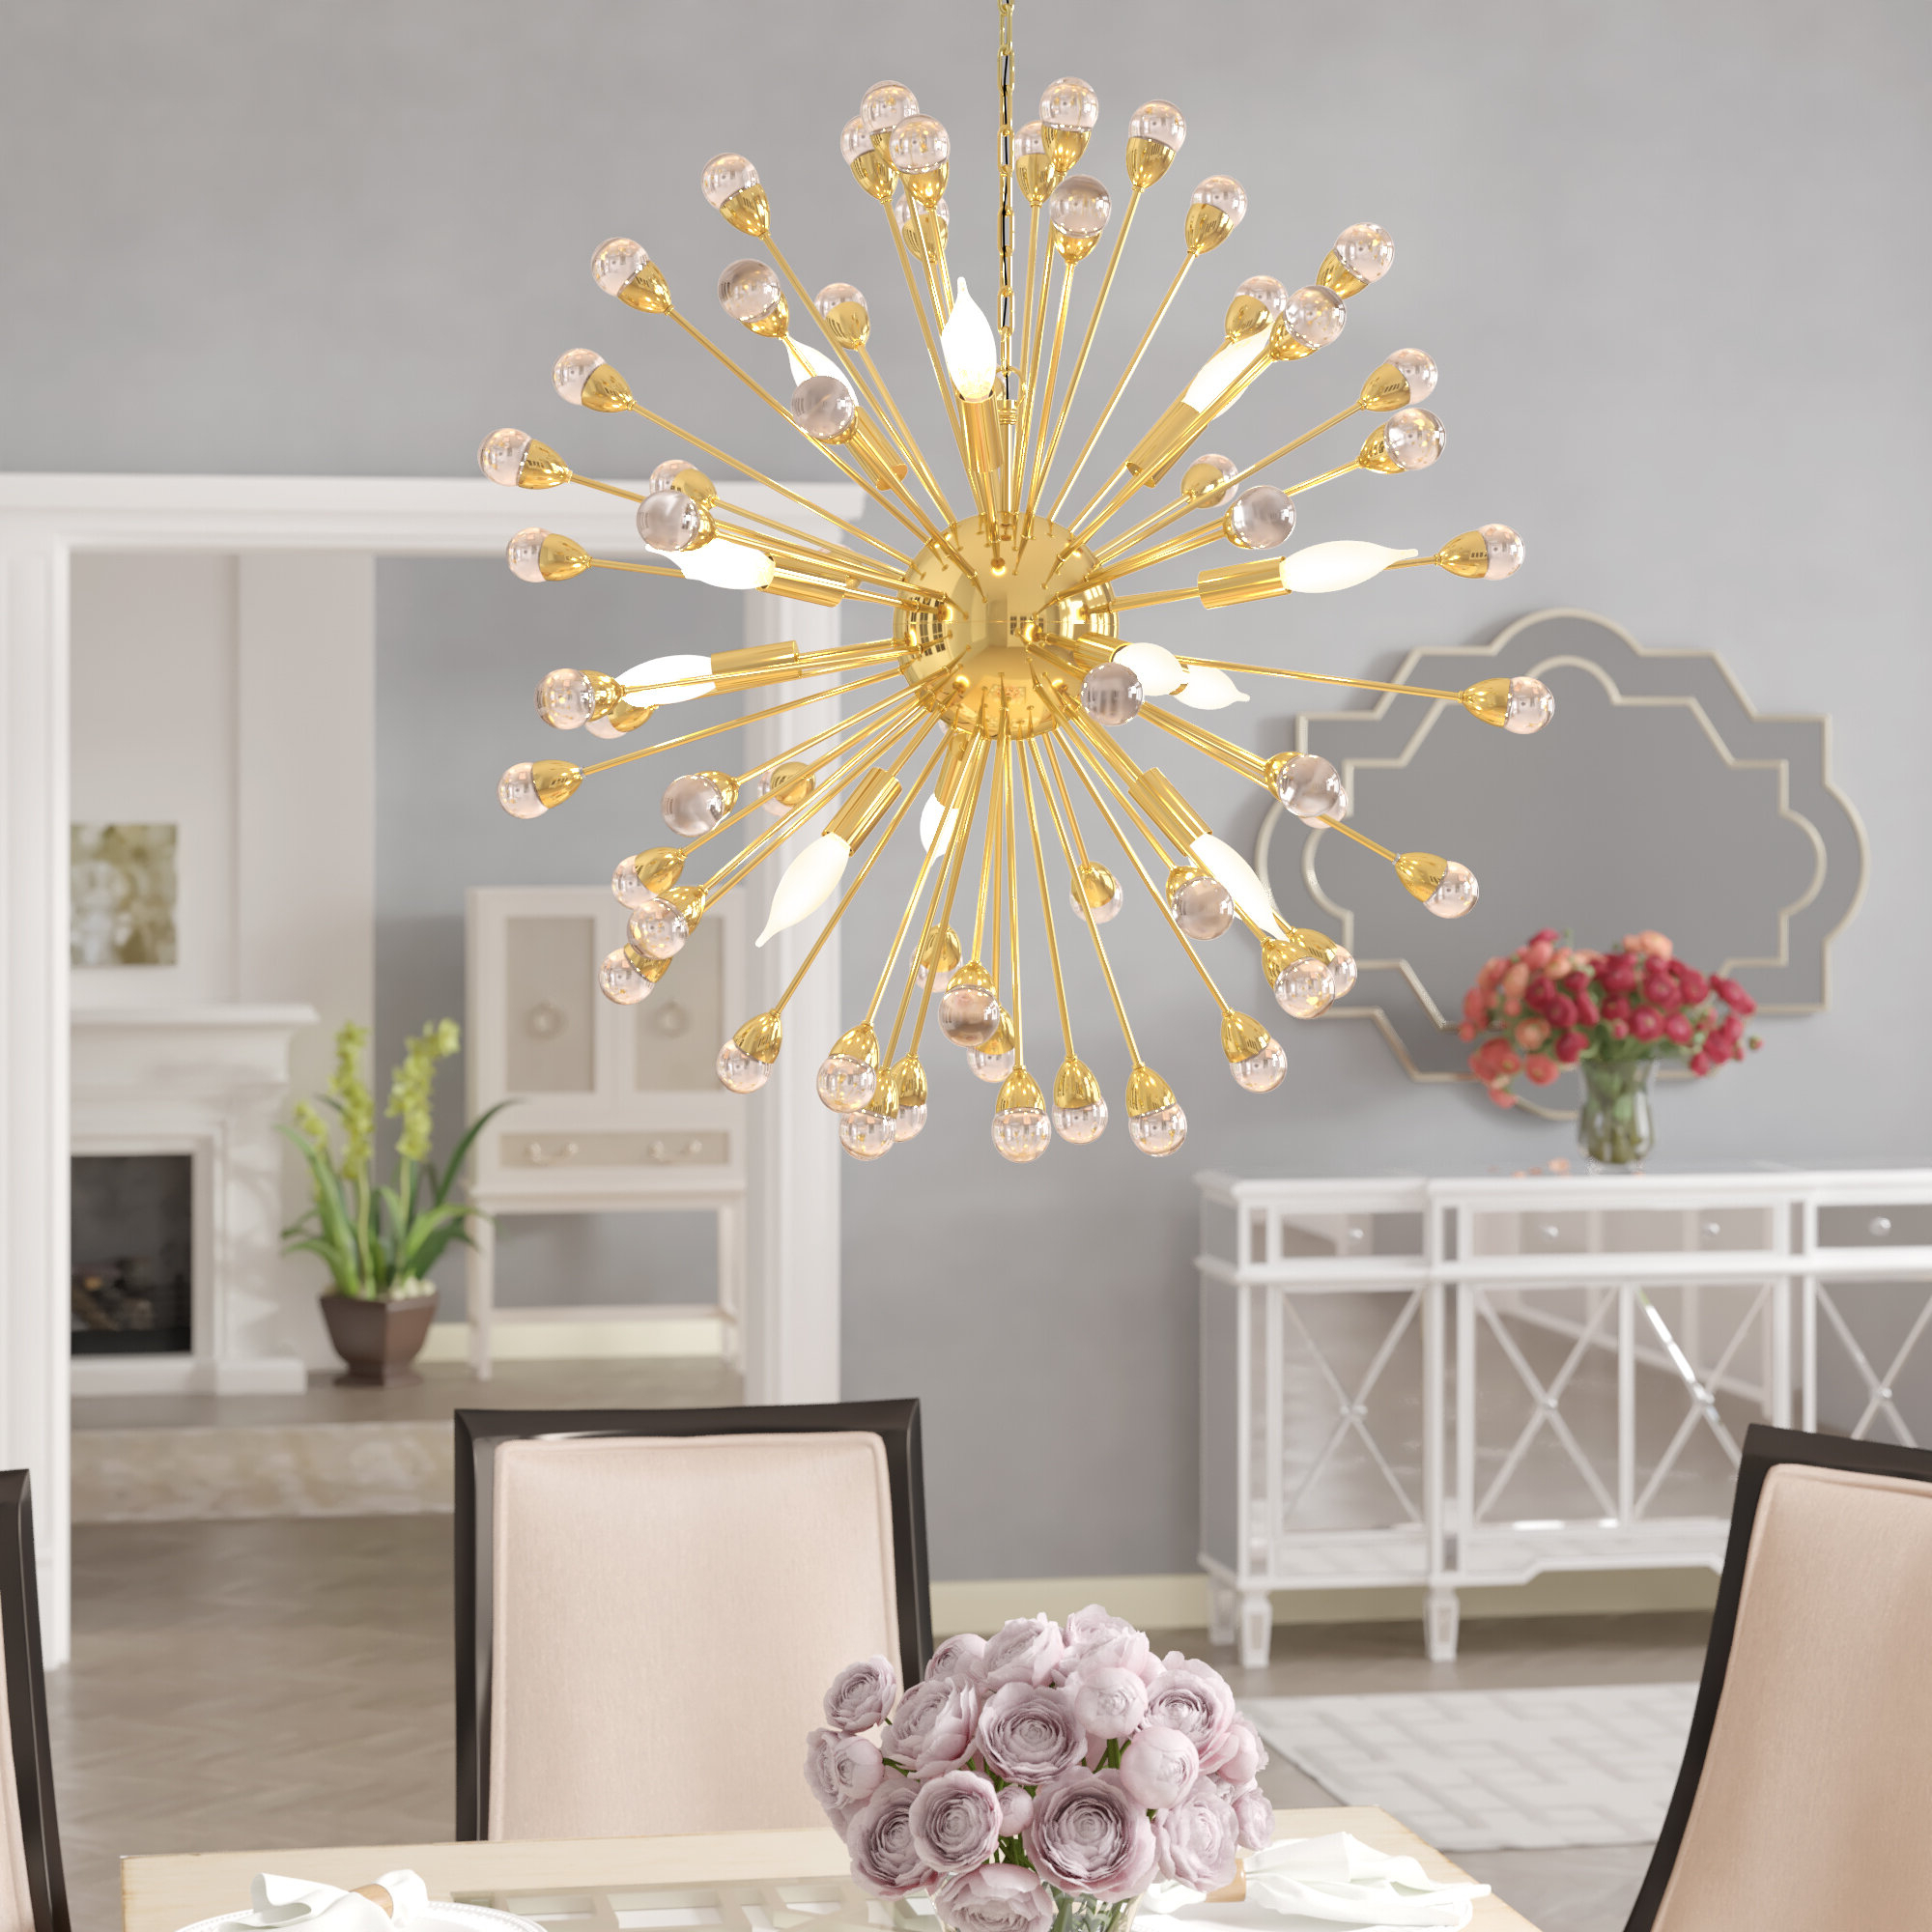 Popular Kucharski 12 Light Sputnik Chandelier Within Nelly 12 Light Sputnik Chandeliers (View 21 of 25)